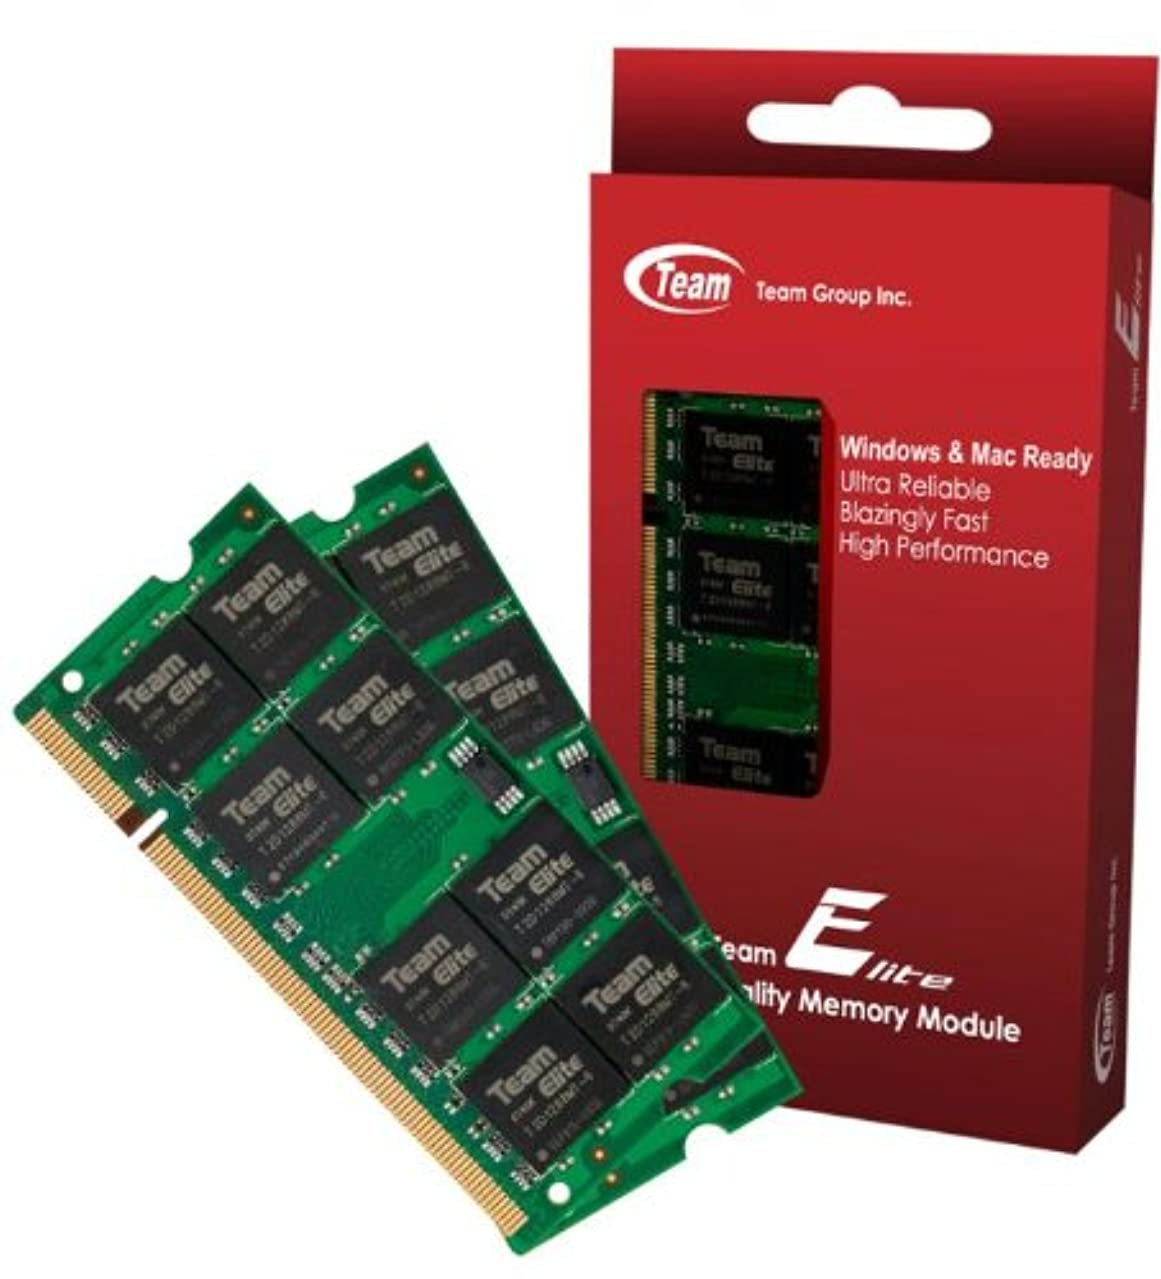 4GB (2GBx2) Team High Performance Memory RAM Upgrade For Sony VAIO VGN-SR16 VGN-SR165E VGN-SR19 Laptop. The Memory Kit comes with Life Time Warranty.